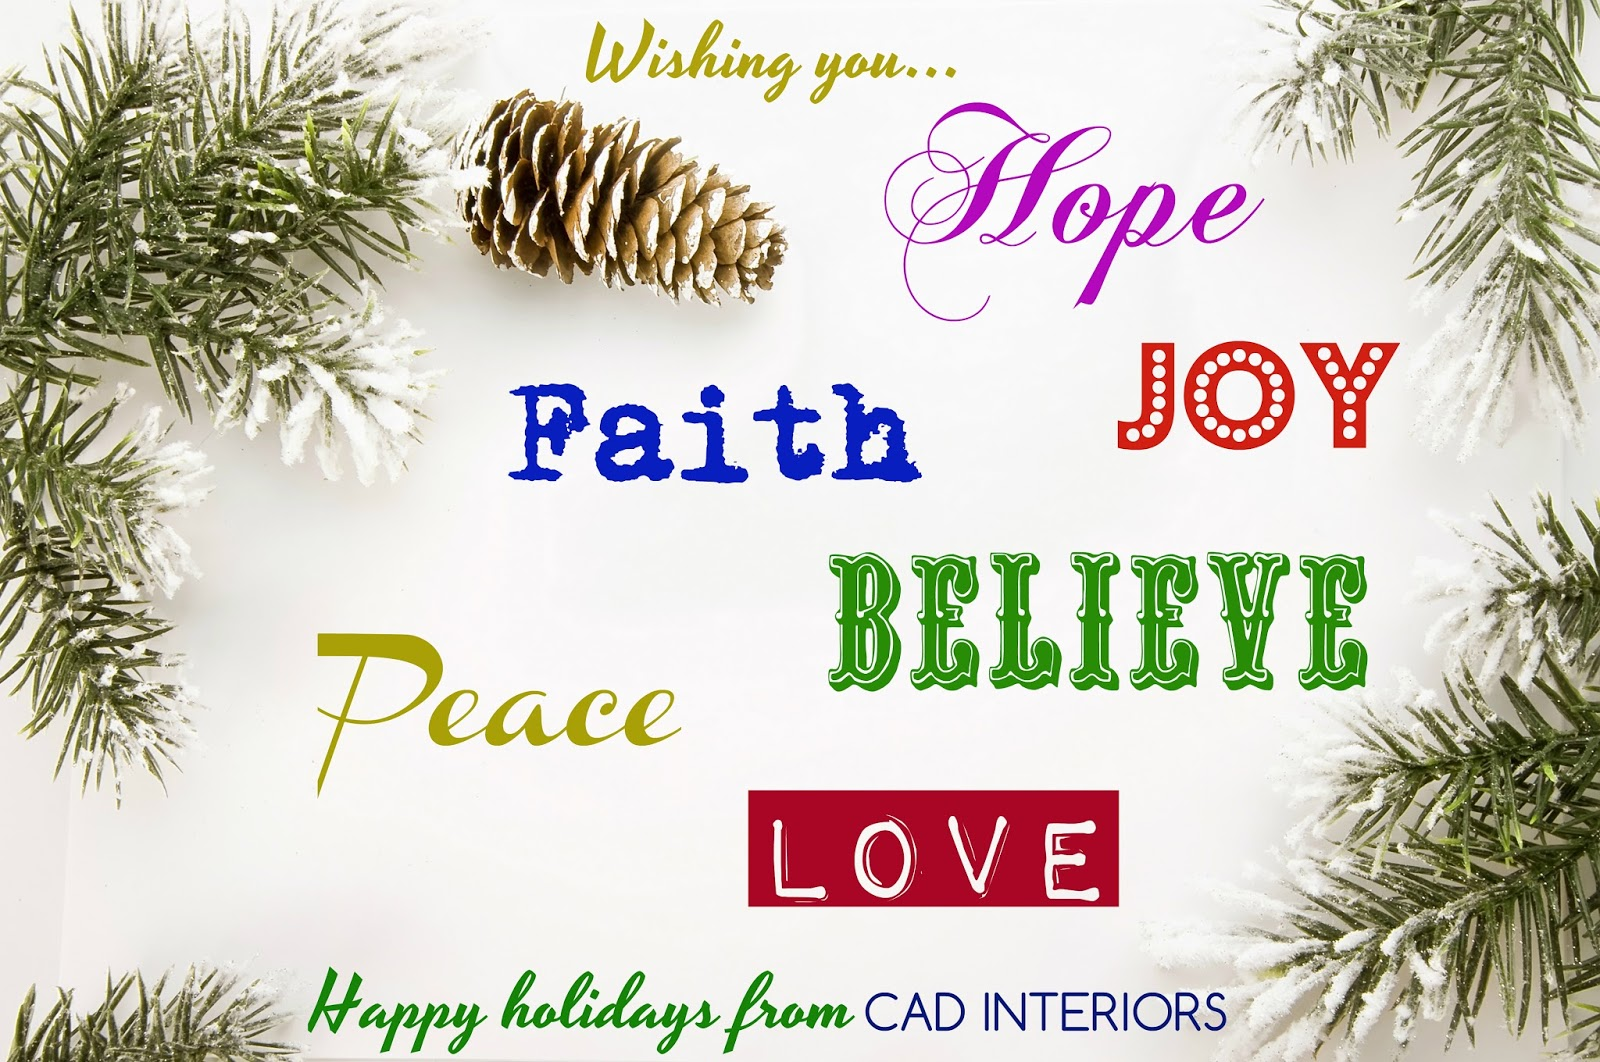 Cad interiors affordable stylish interiors christmas holiday greetings quotes sayings m4hsunfo